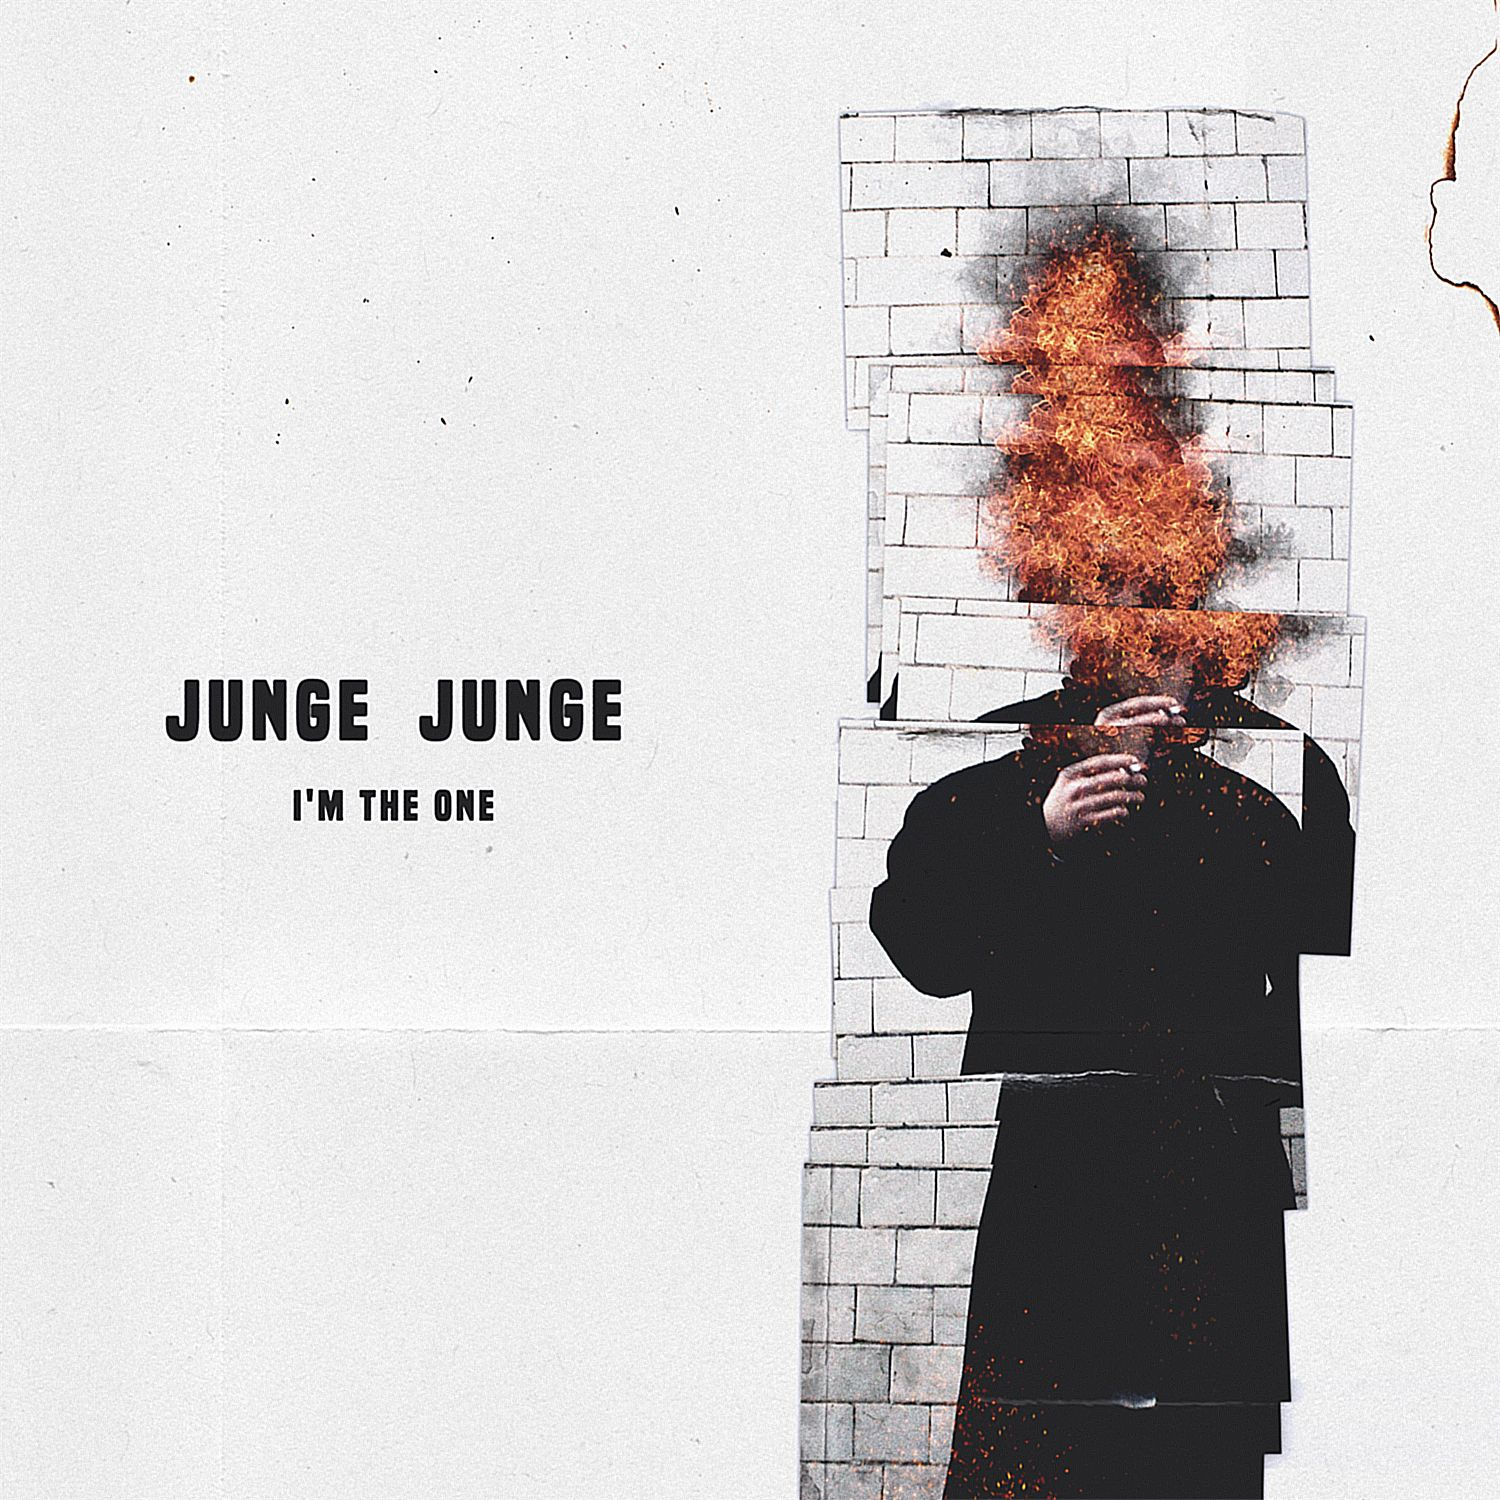 junge_junge_im_the_one_cover_1500x1500_300dpi.jpg